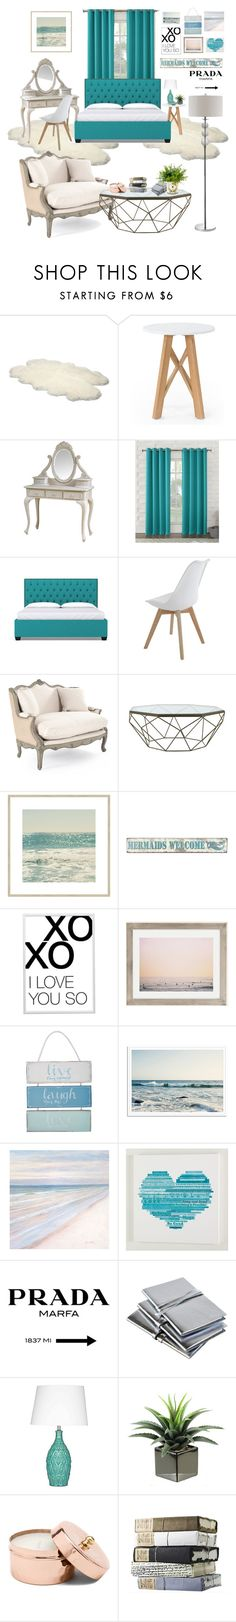 """""""Bedroom Inspired"""" by catarinaferreira-cf ❤ liked on Polyvore featuring interior, interiors, interior design, home, home decor, interior decorating, UGG Australia, Flamant, Sun Zero and Jayson Home"""